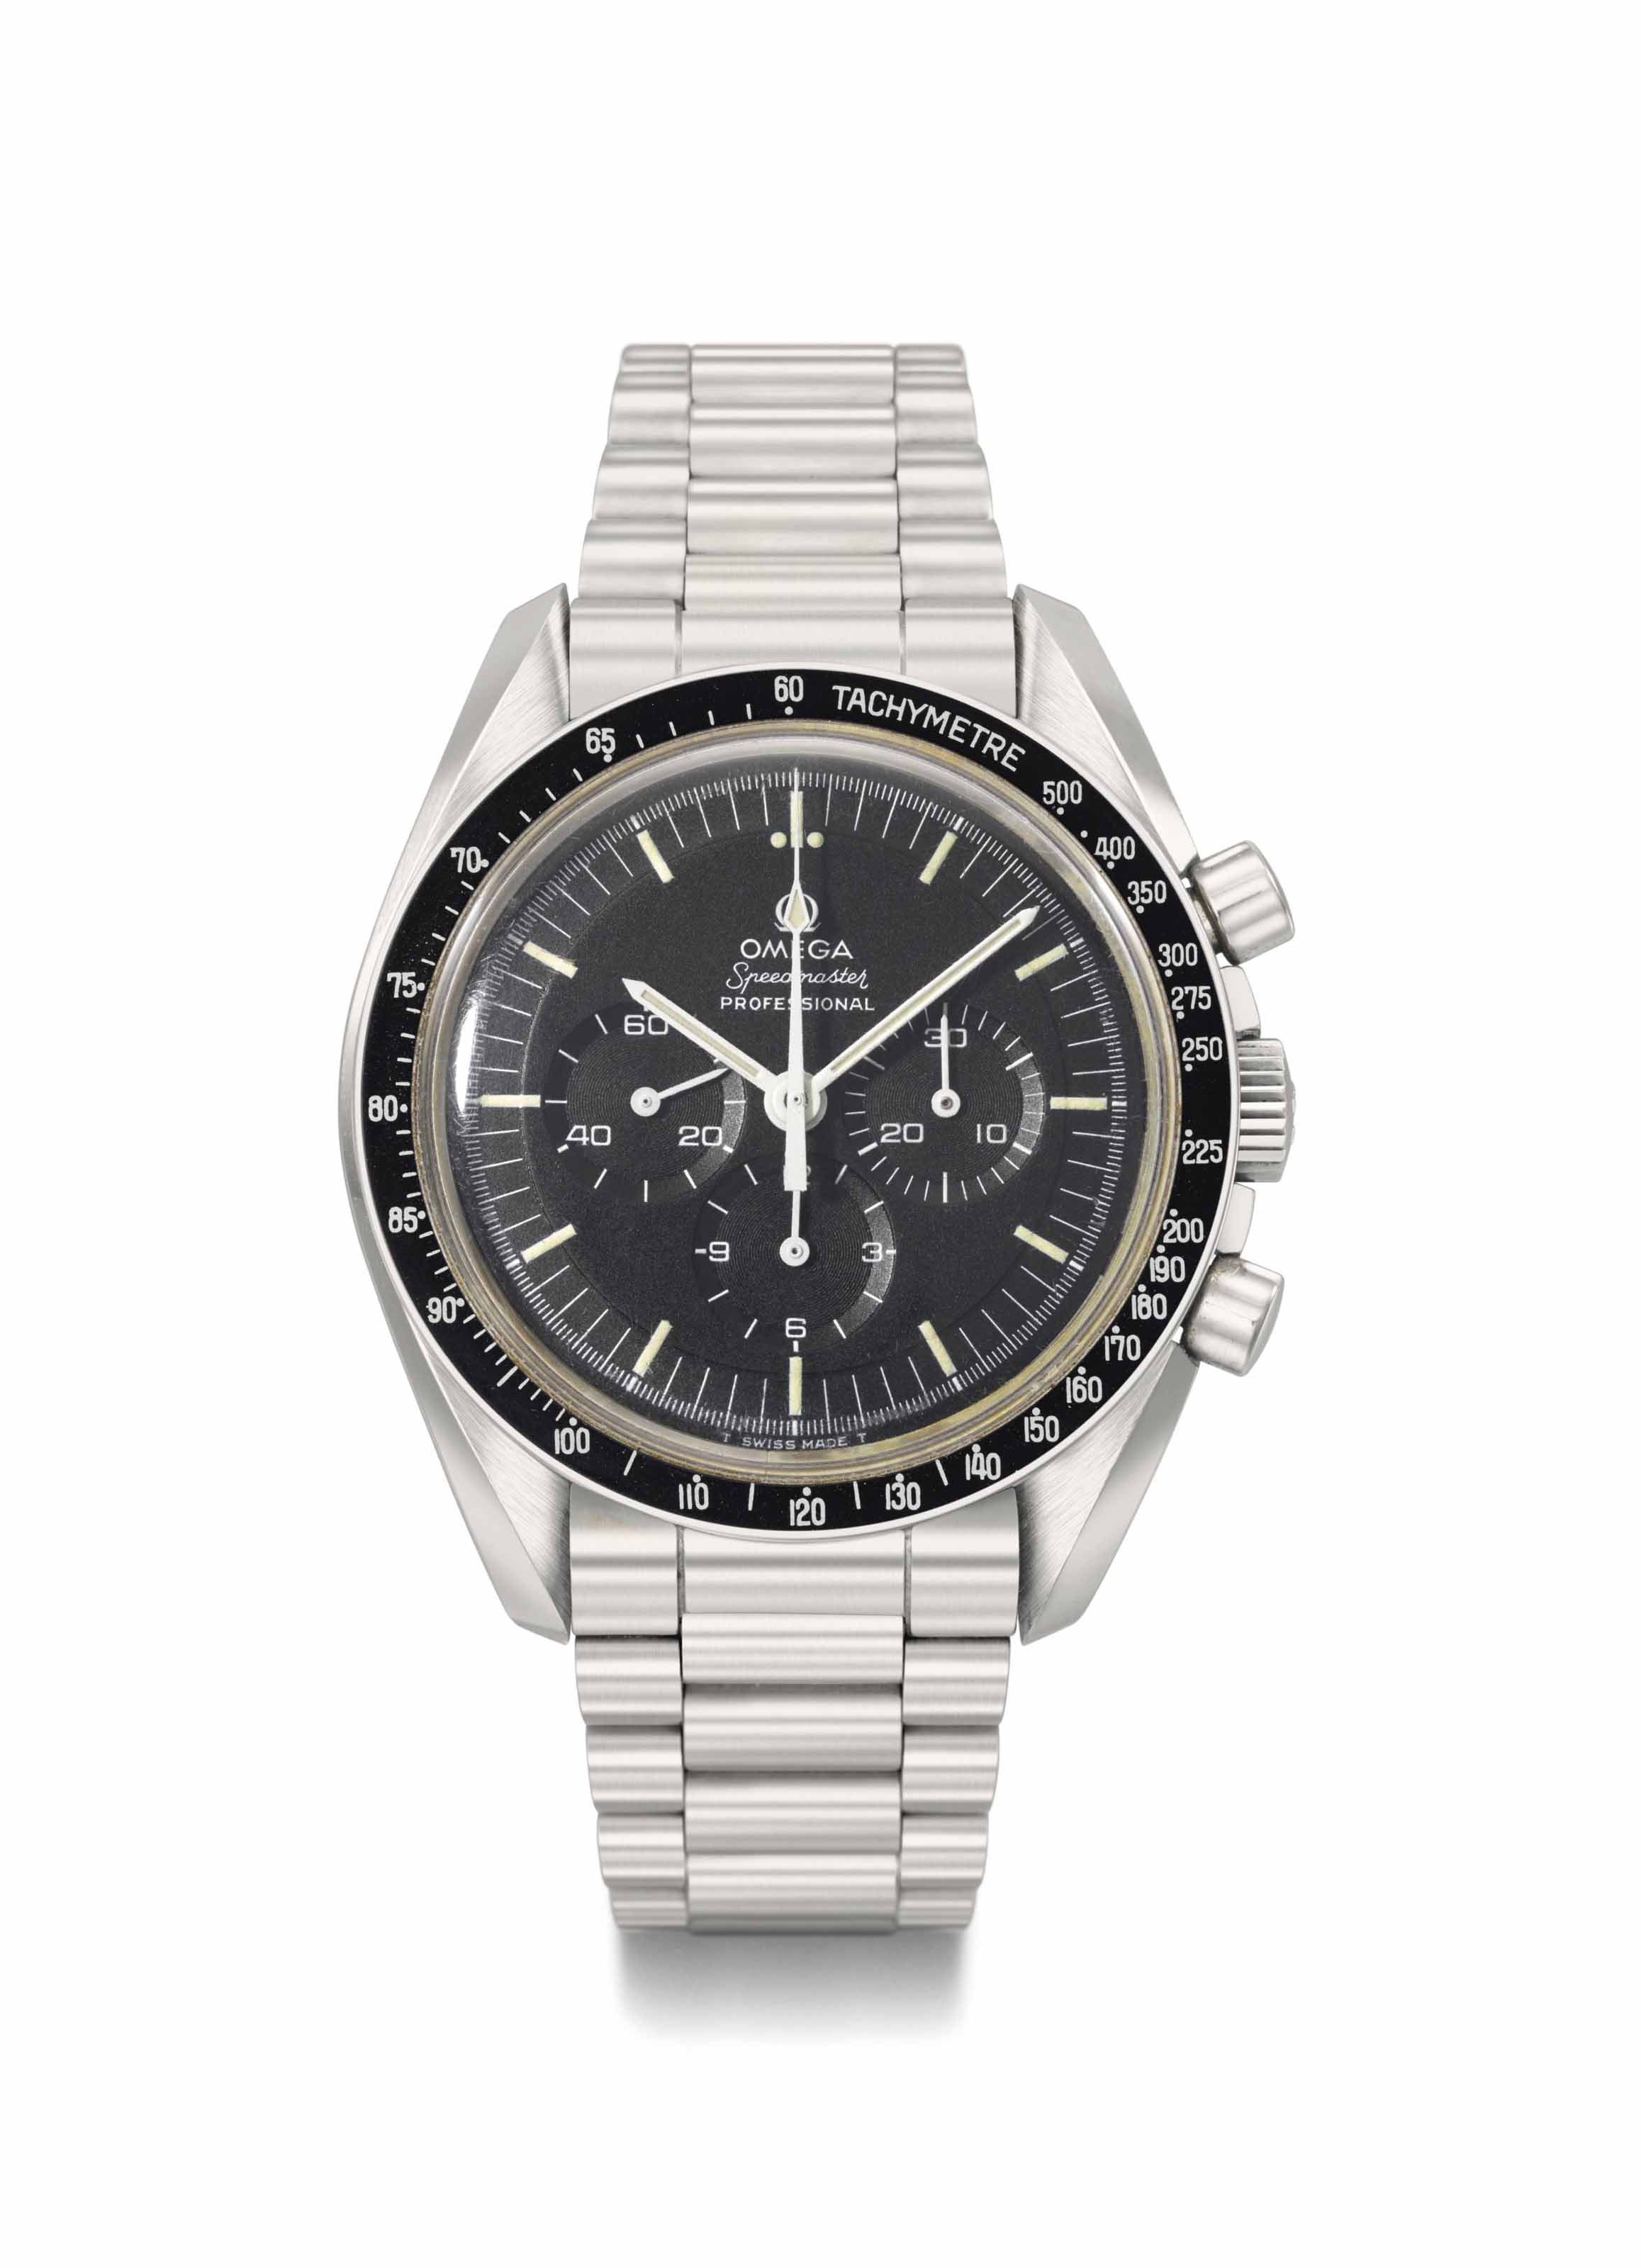 Omega. An Exceptional, Highly Attractive and Historically Important Apollo 17 Privately Flown Stainless Steel Chronograph Wristwatch and Flown Metal Attachment from the Personal Collection of Astronaut Ron Evans, Certified and Signed